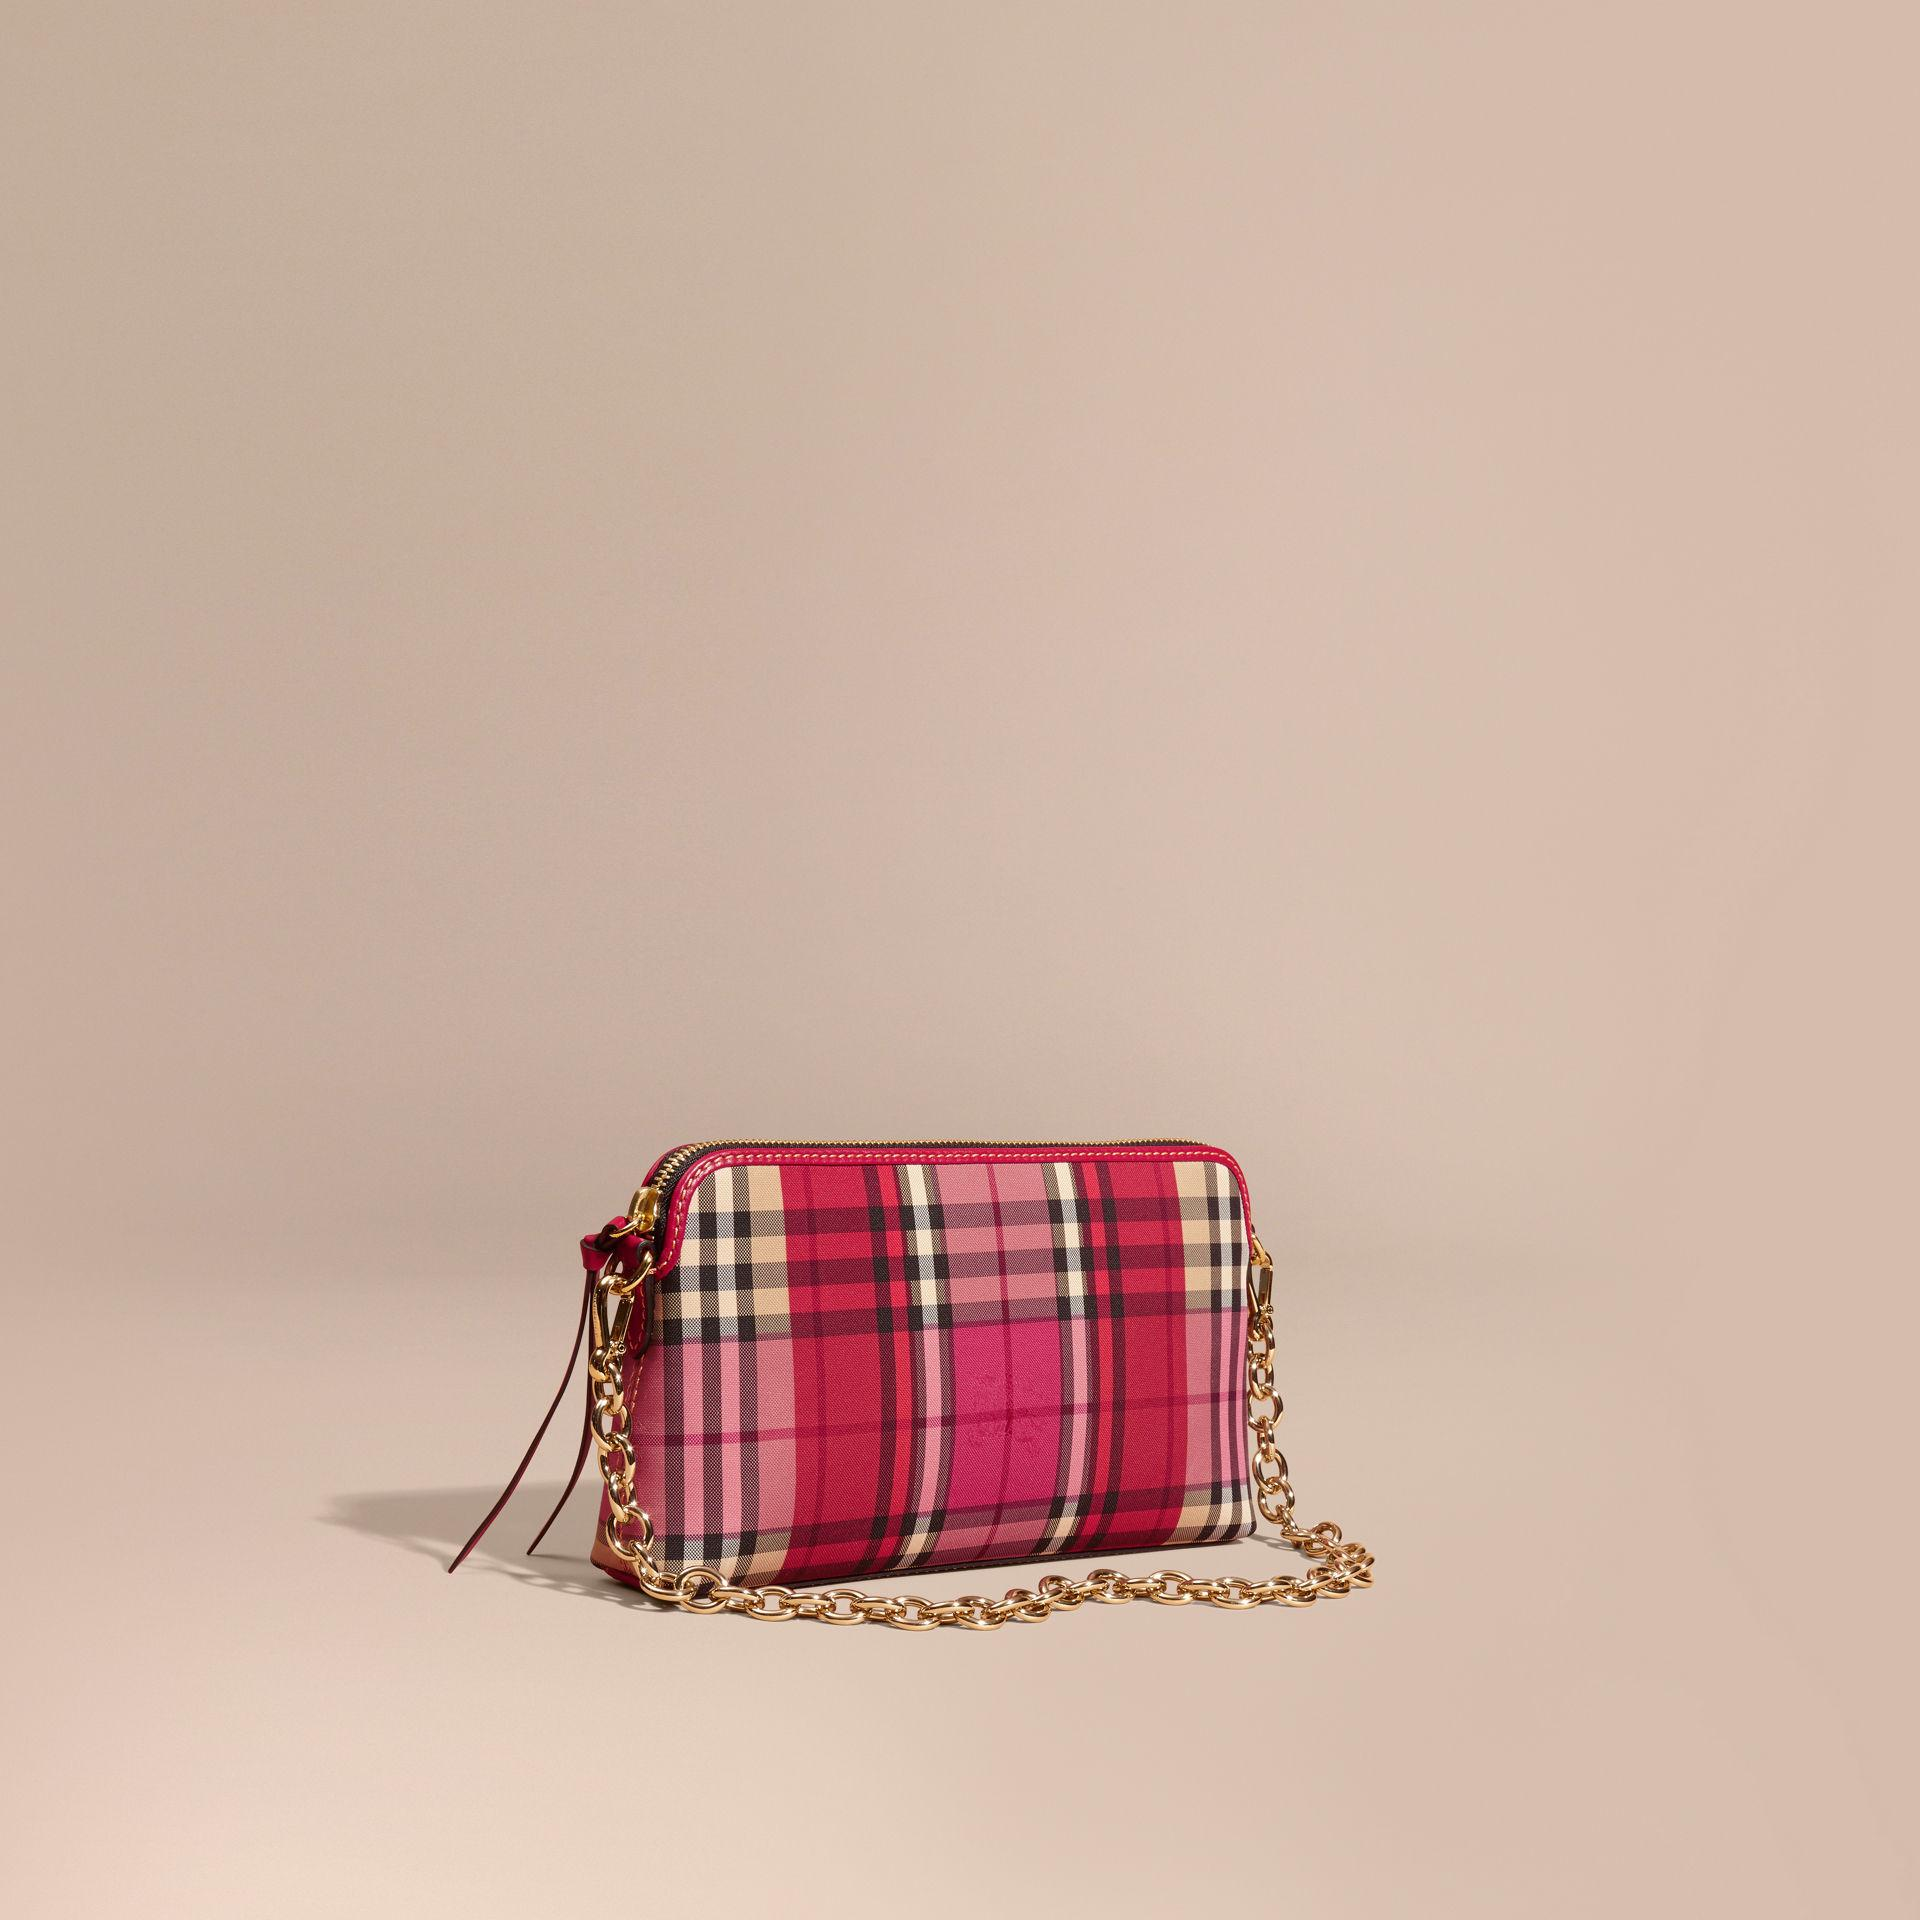 a129967da53 Lyst - Burberry Overdyed Horseferry Check And Leather Clutch Bag